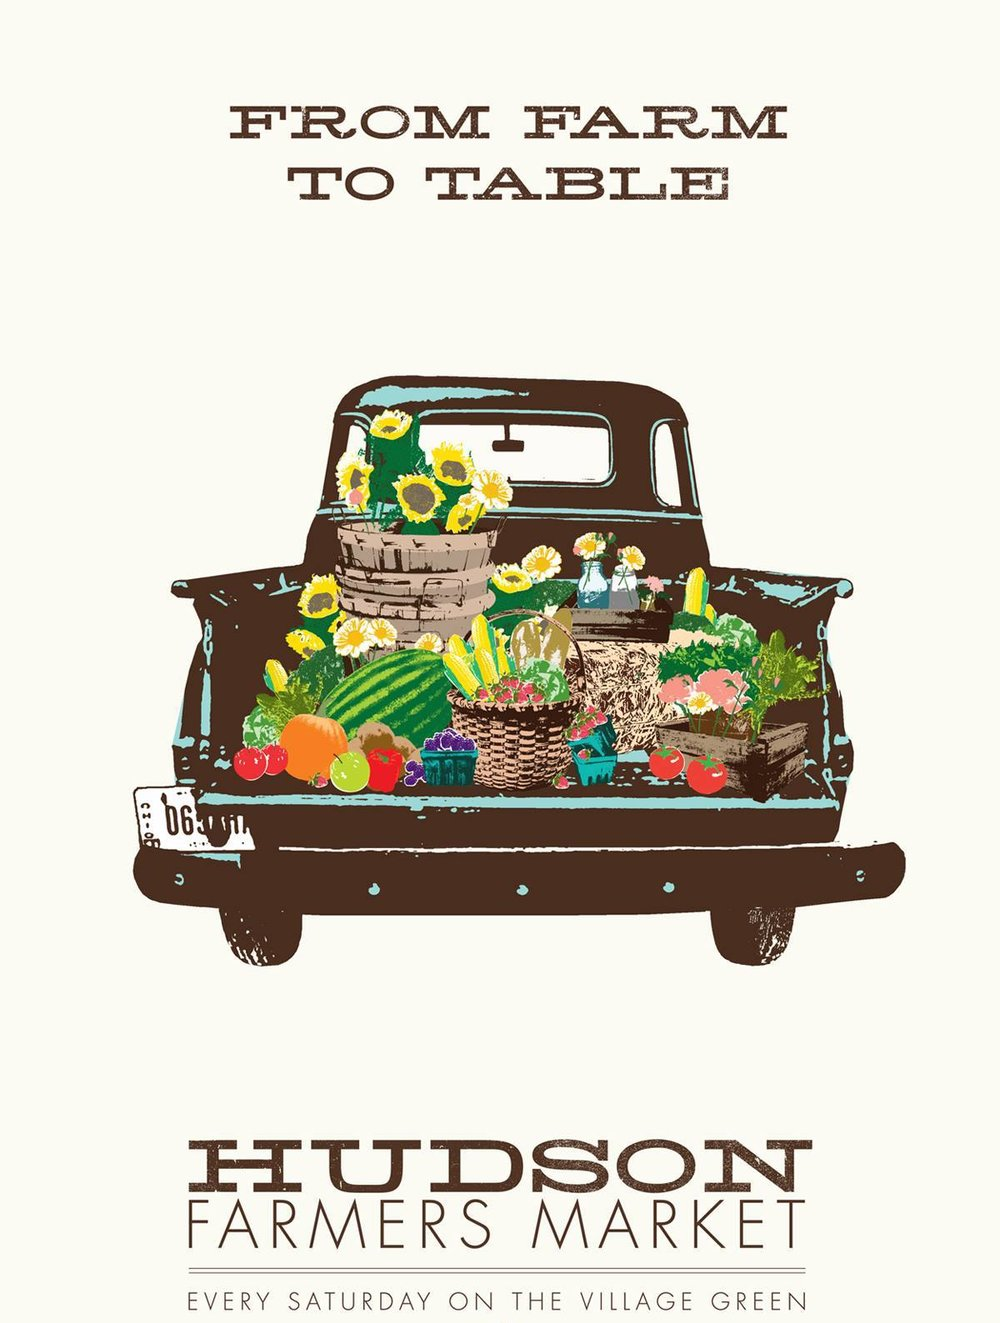 Hudson Farmers Market - June 2nd-Oct 6th Every Saturday starting June 2nd, from 9am-12:30pm on the village green. There are over 35 vendors of fresh produce, flowers, homemade food, coffee, and organic products.Read more →